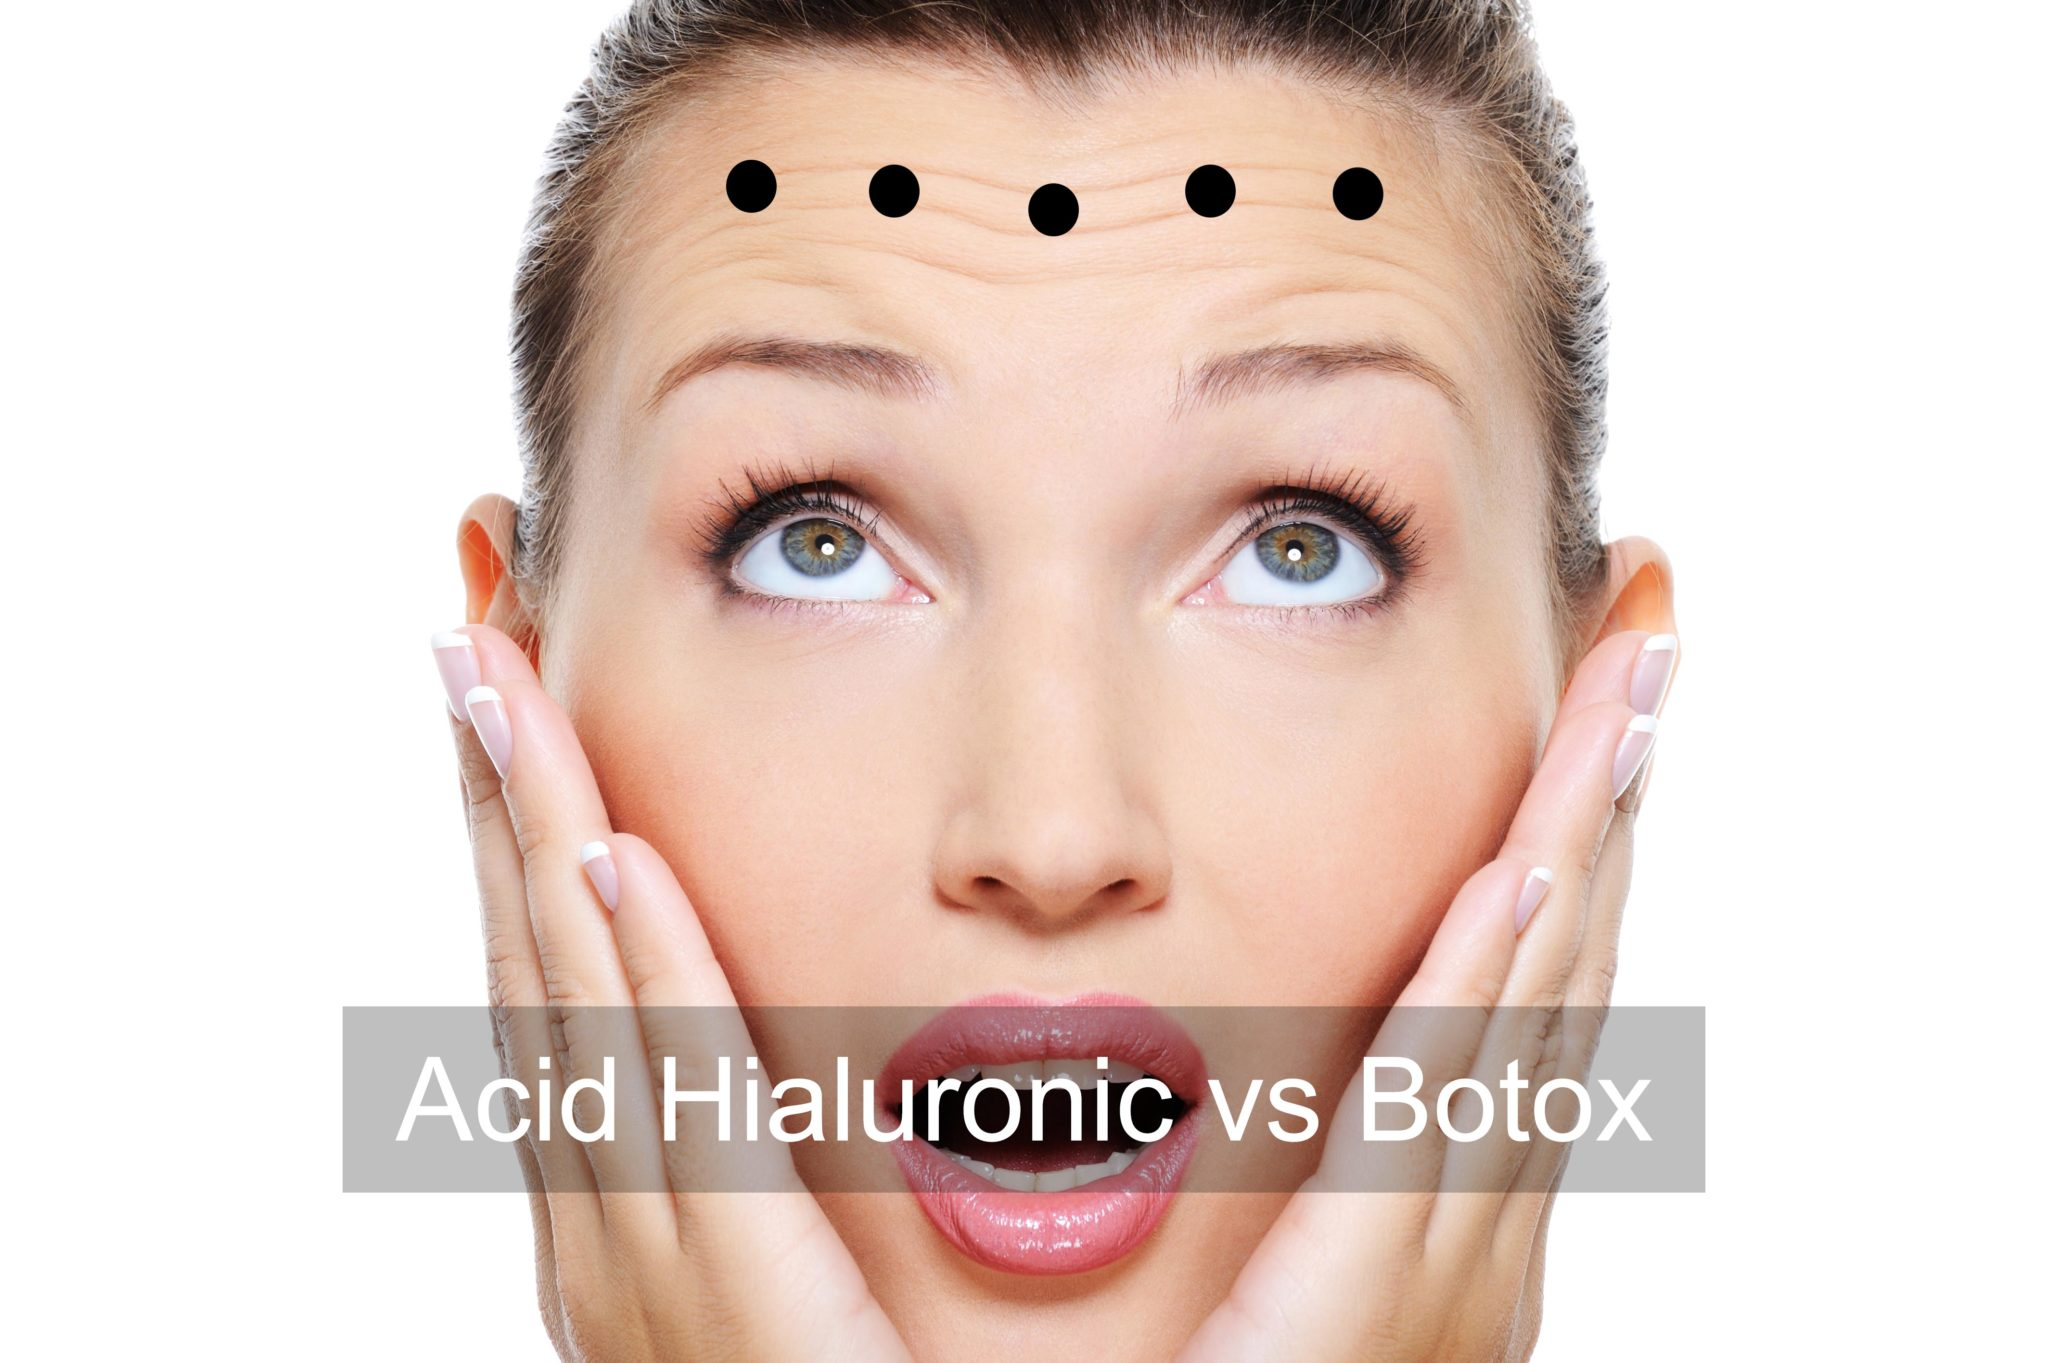 Acid Hialuronic vs Botox